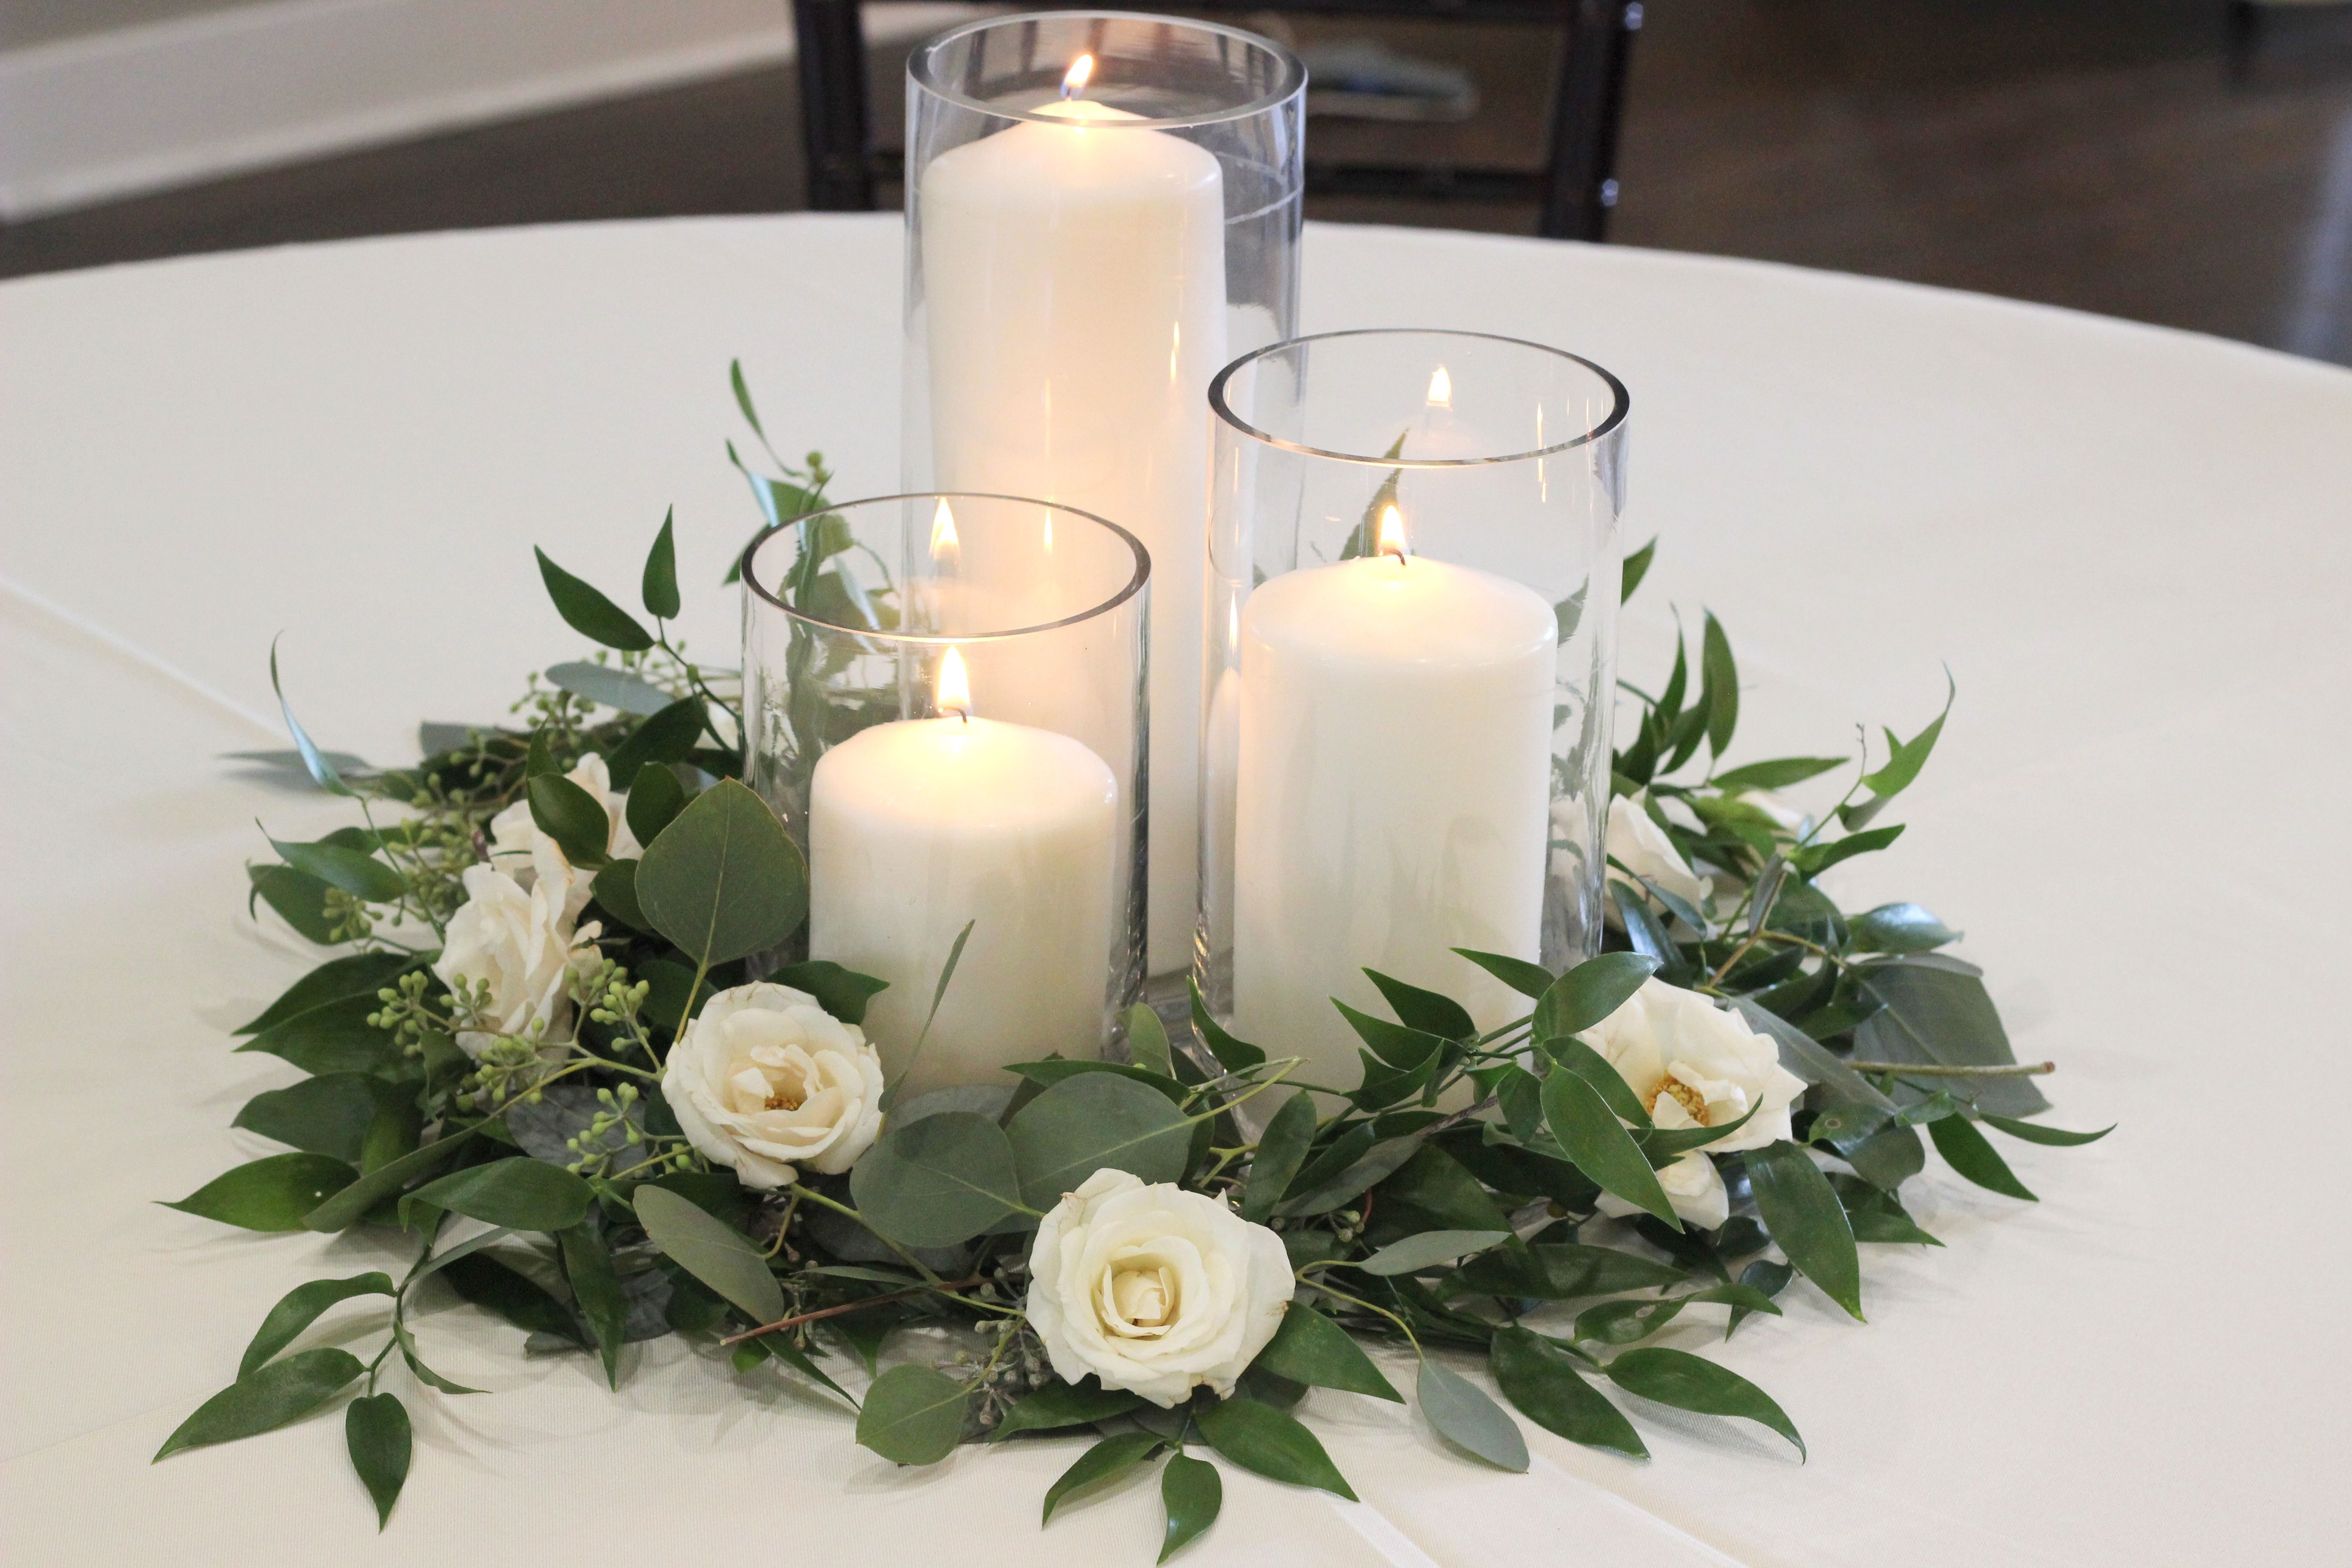 Greenery And Spray Rose Centerpiece With Pillar Candles Celebration Flair Candle Wedding Centerpieces Wedding Table Centerpieces Rose Centerpieces